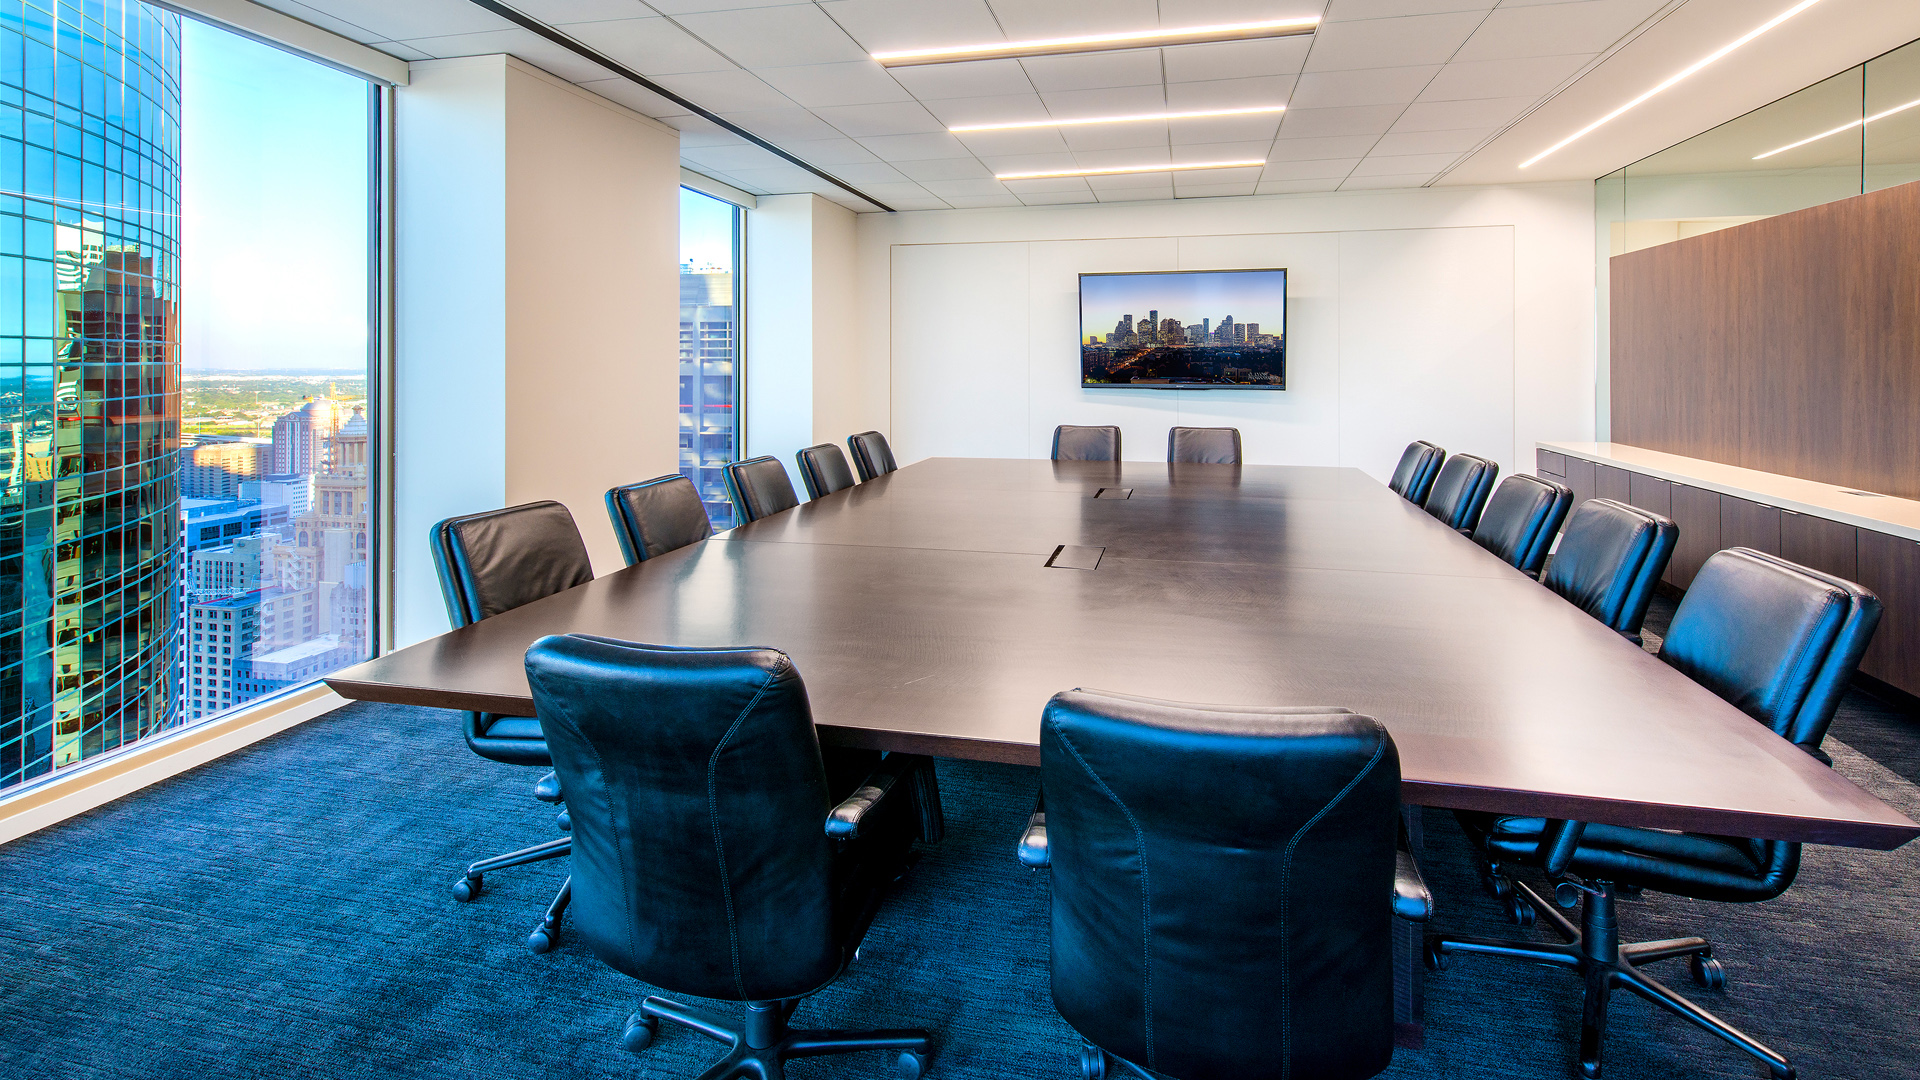 LawFirm Interior Design Reynolds Frizzell Houston Prime Downtown Views Conference Room